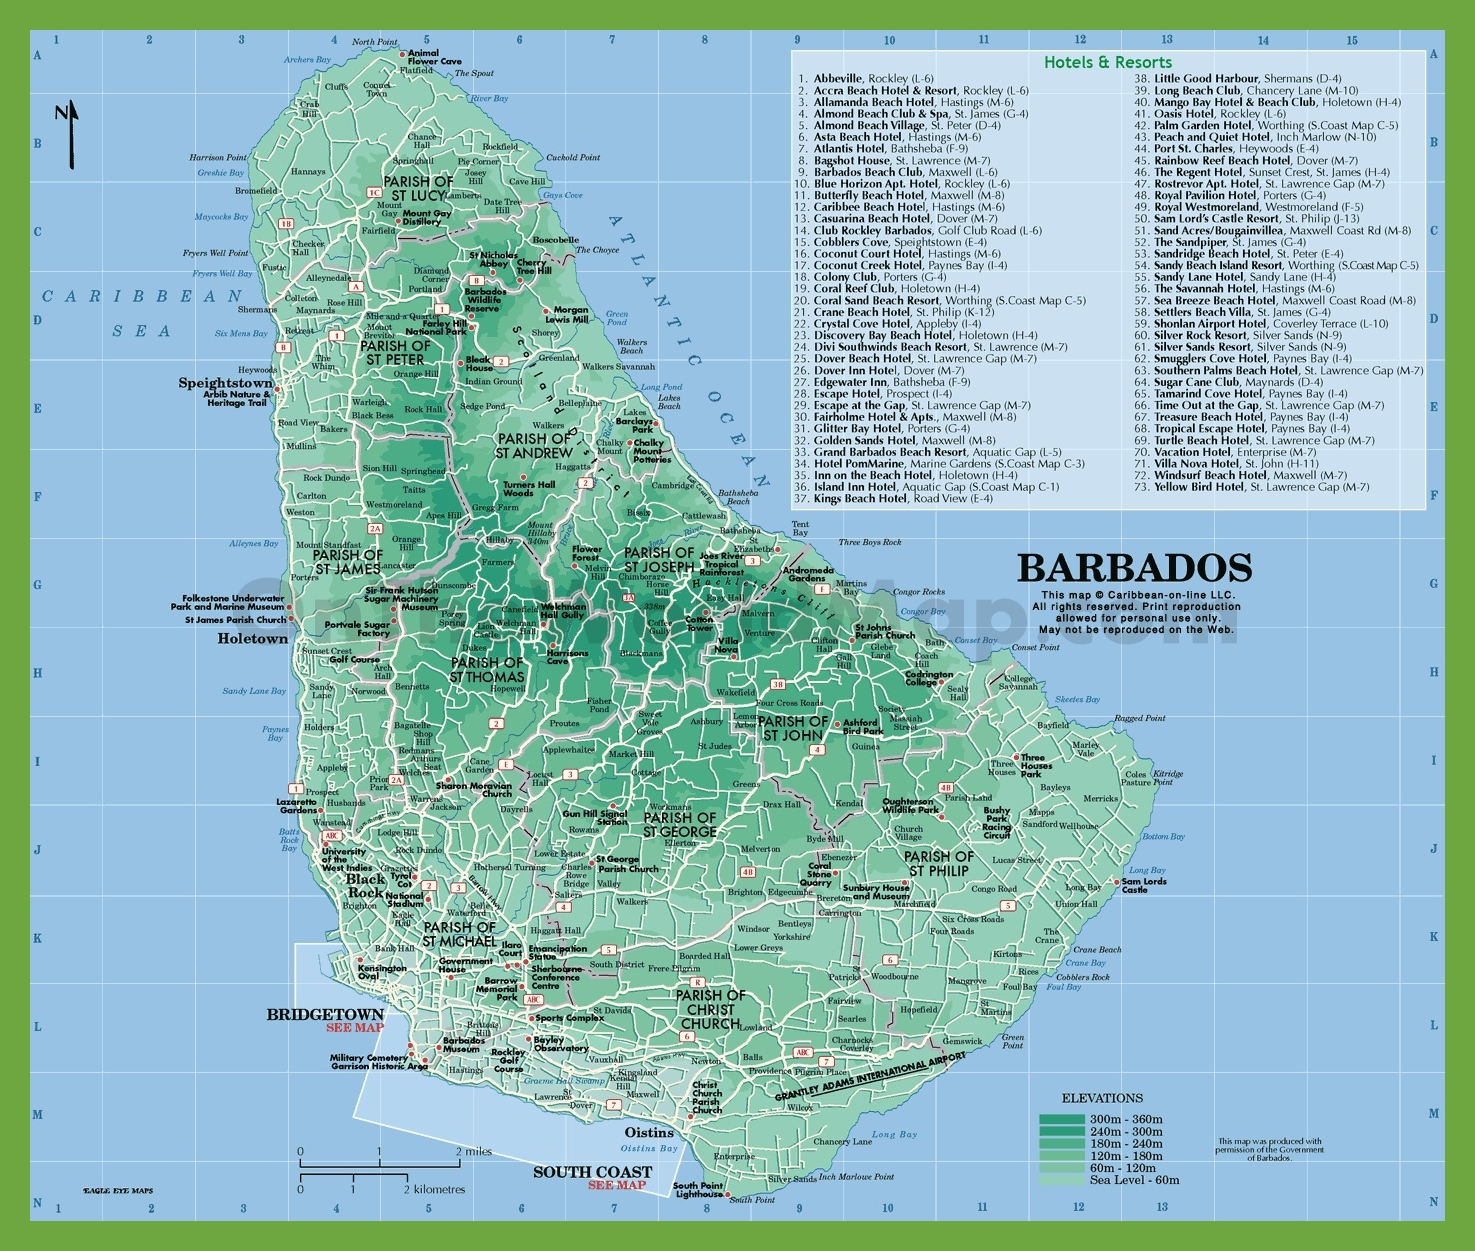 Map of Barbados with hotels and resorts